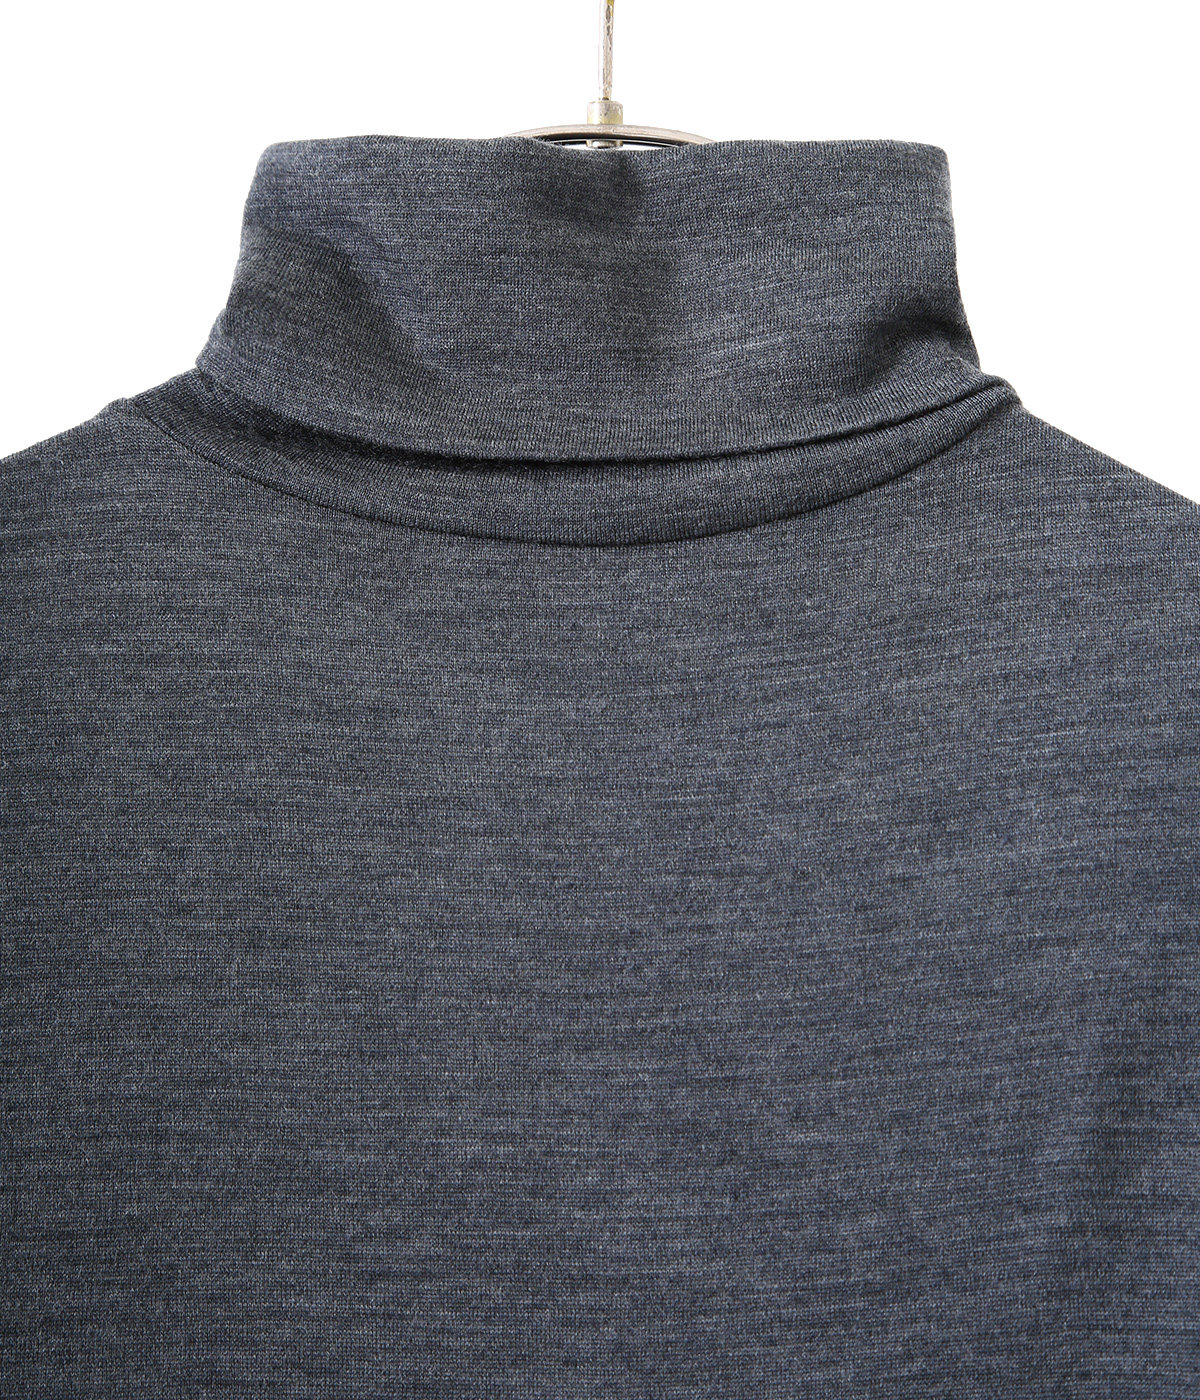 Washable Wool High Neck Tee